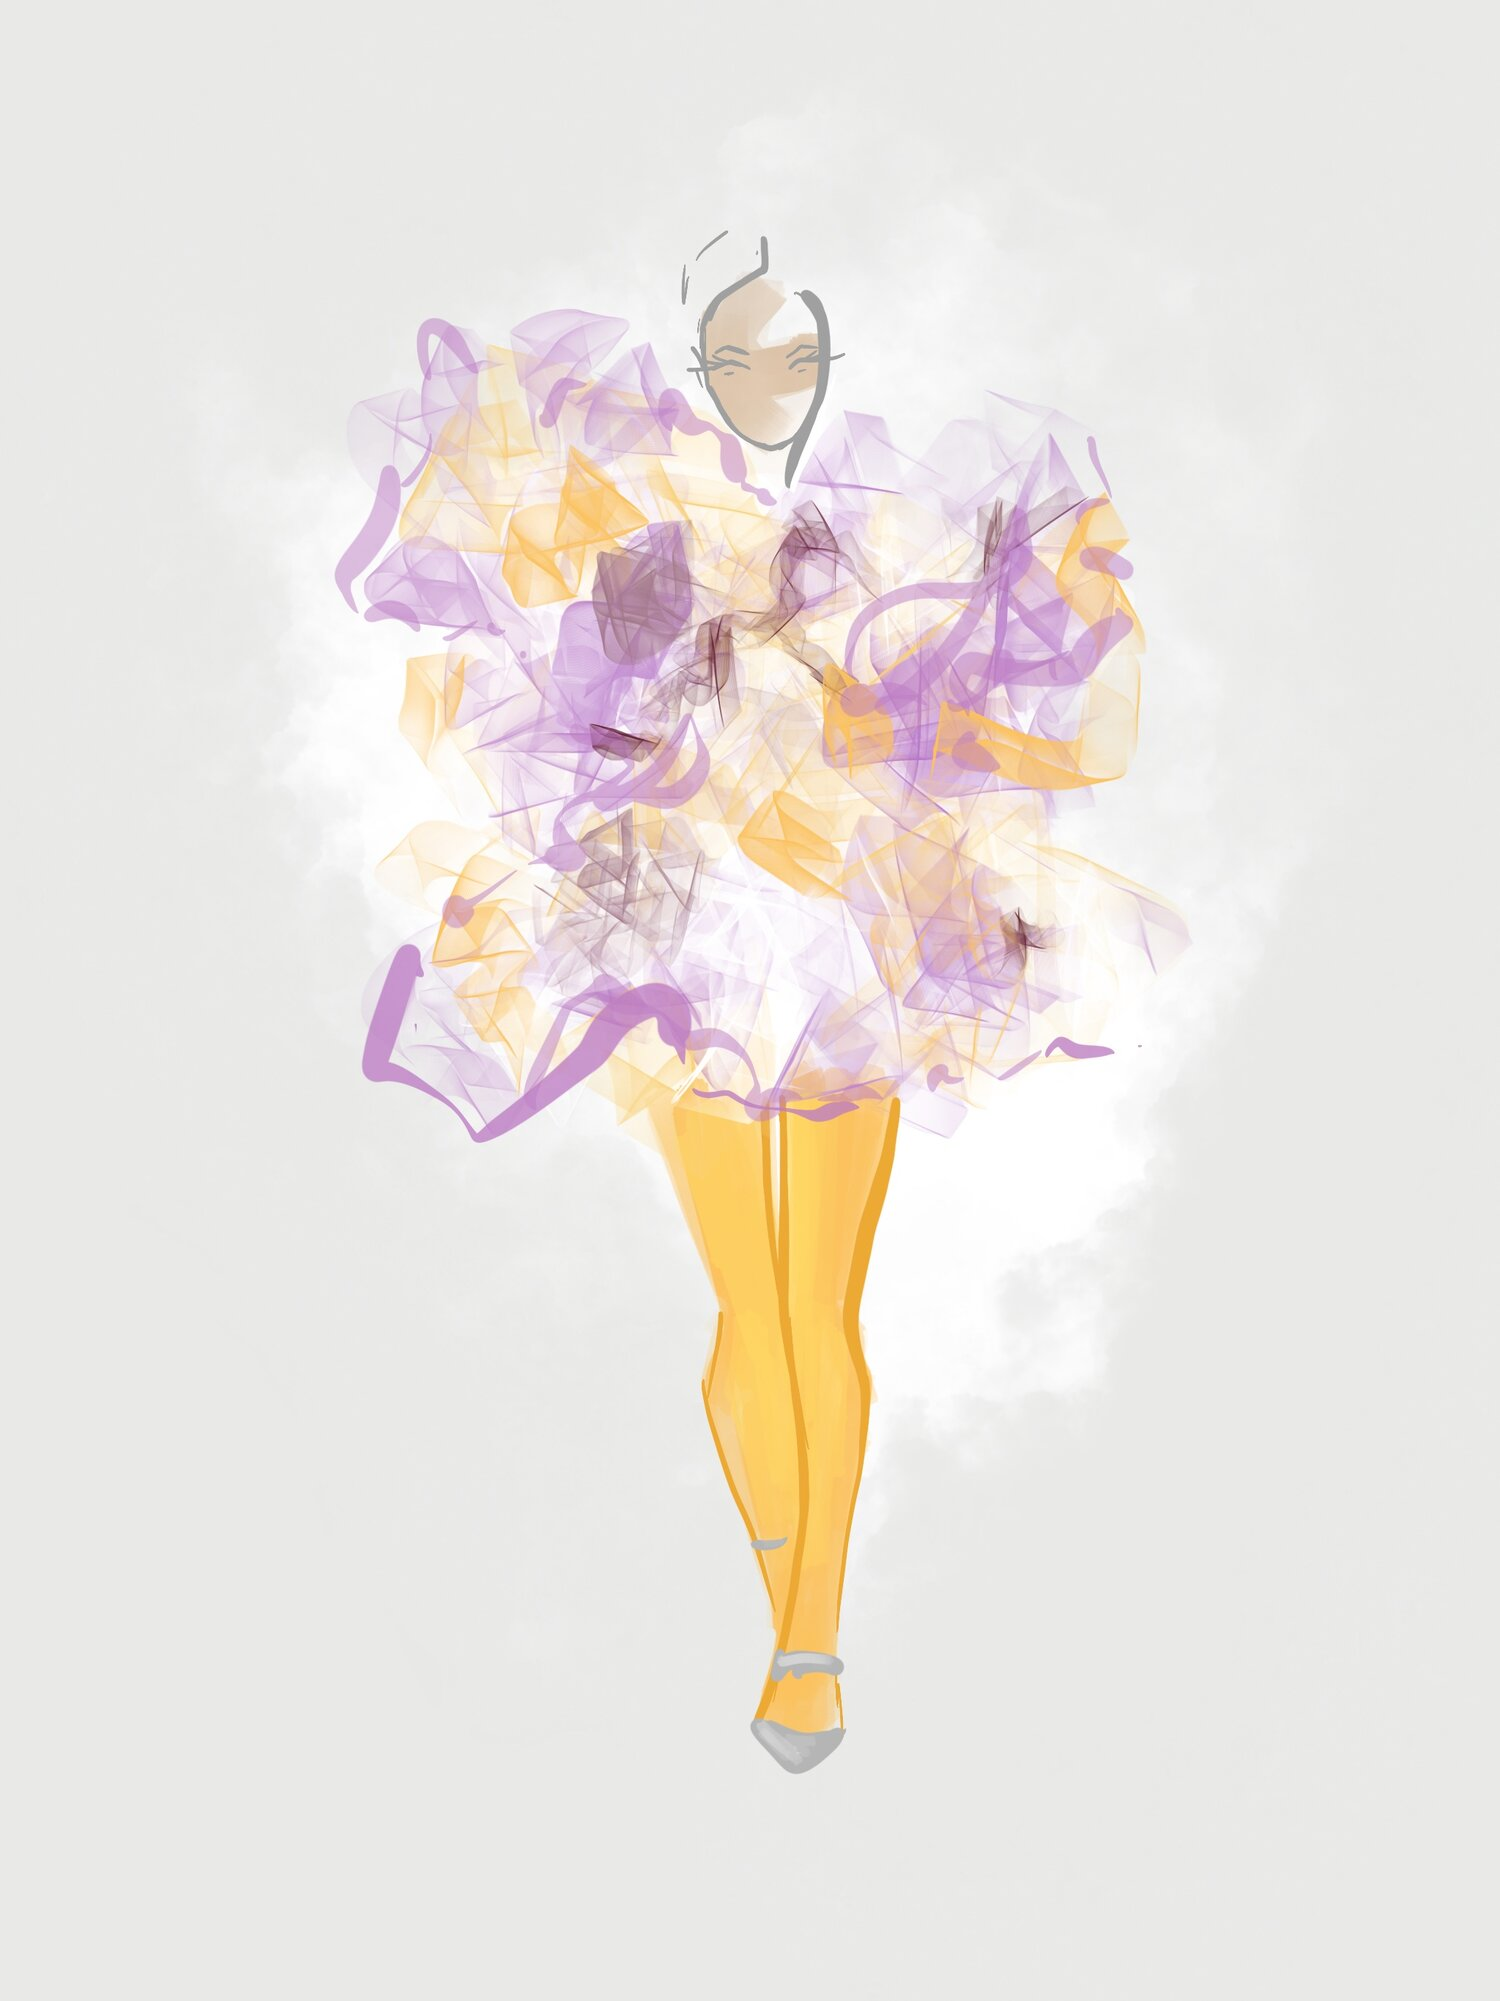 marc-jacobs-nyfw-fashion-illustration-by-stephnaie-anne.jpg